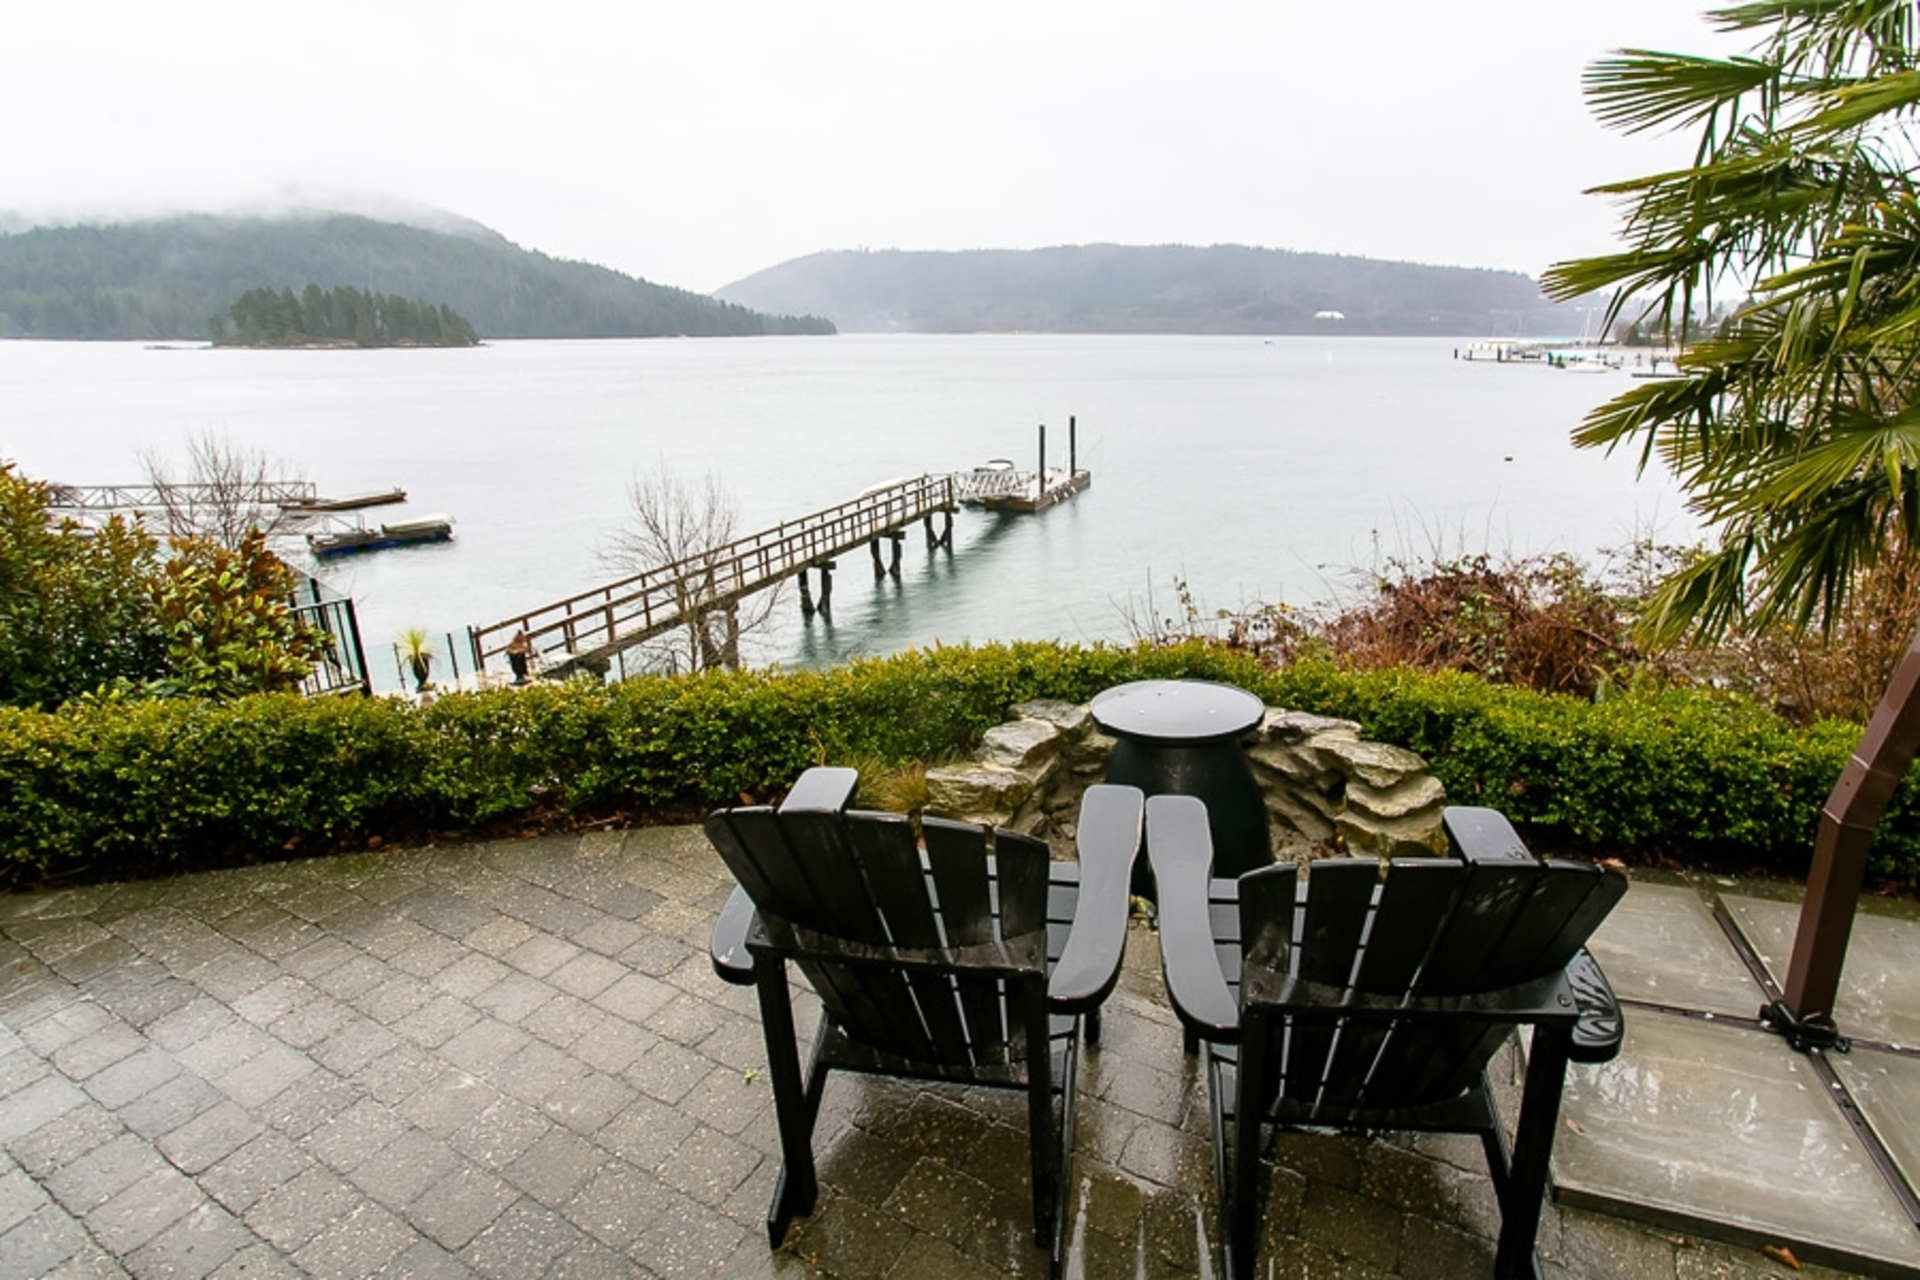 Patio at Address Upon Request, Deep Cove, North Vancouver